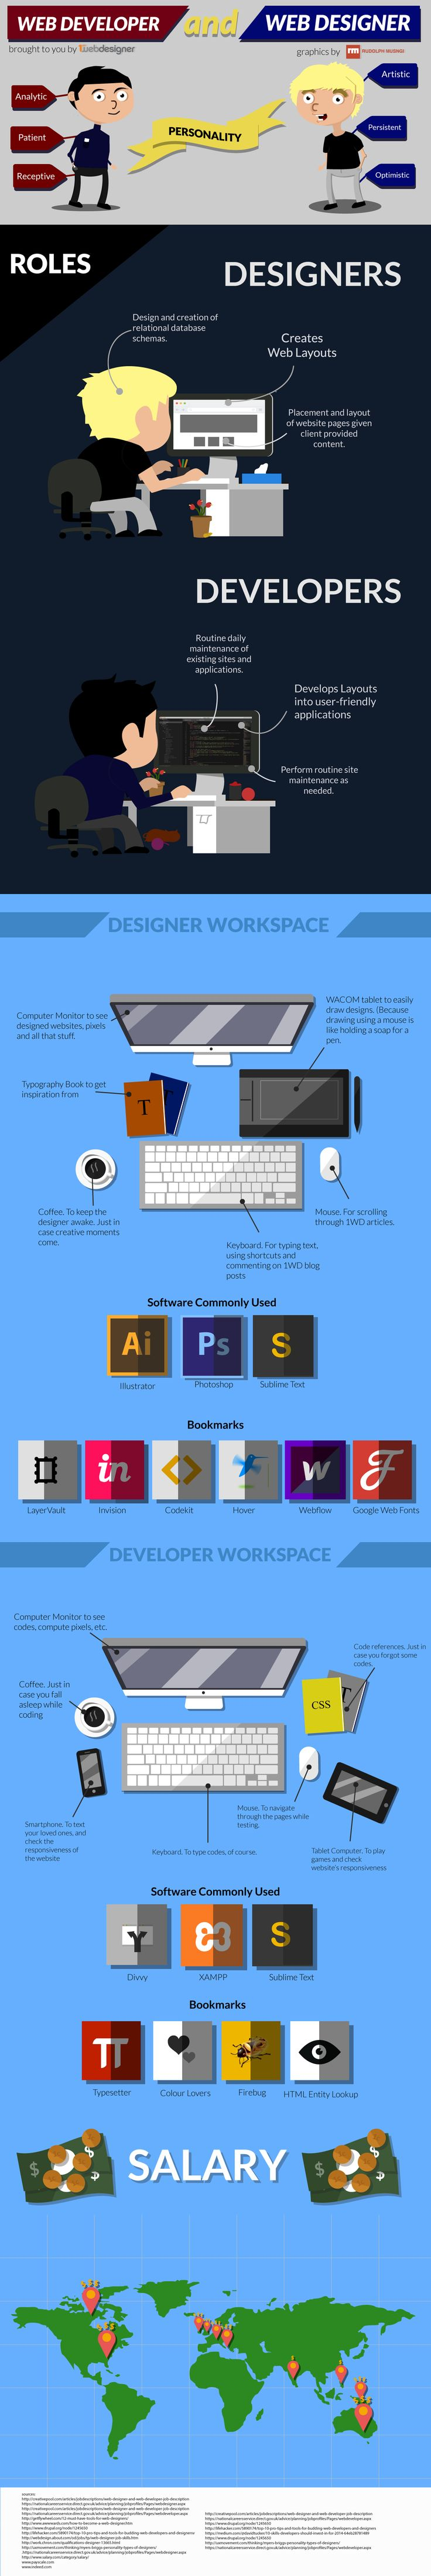 Web #Designer vs. Web Developer #infographic